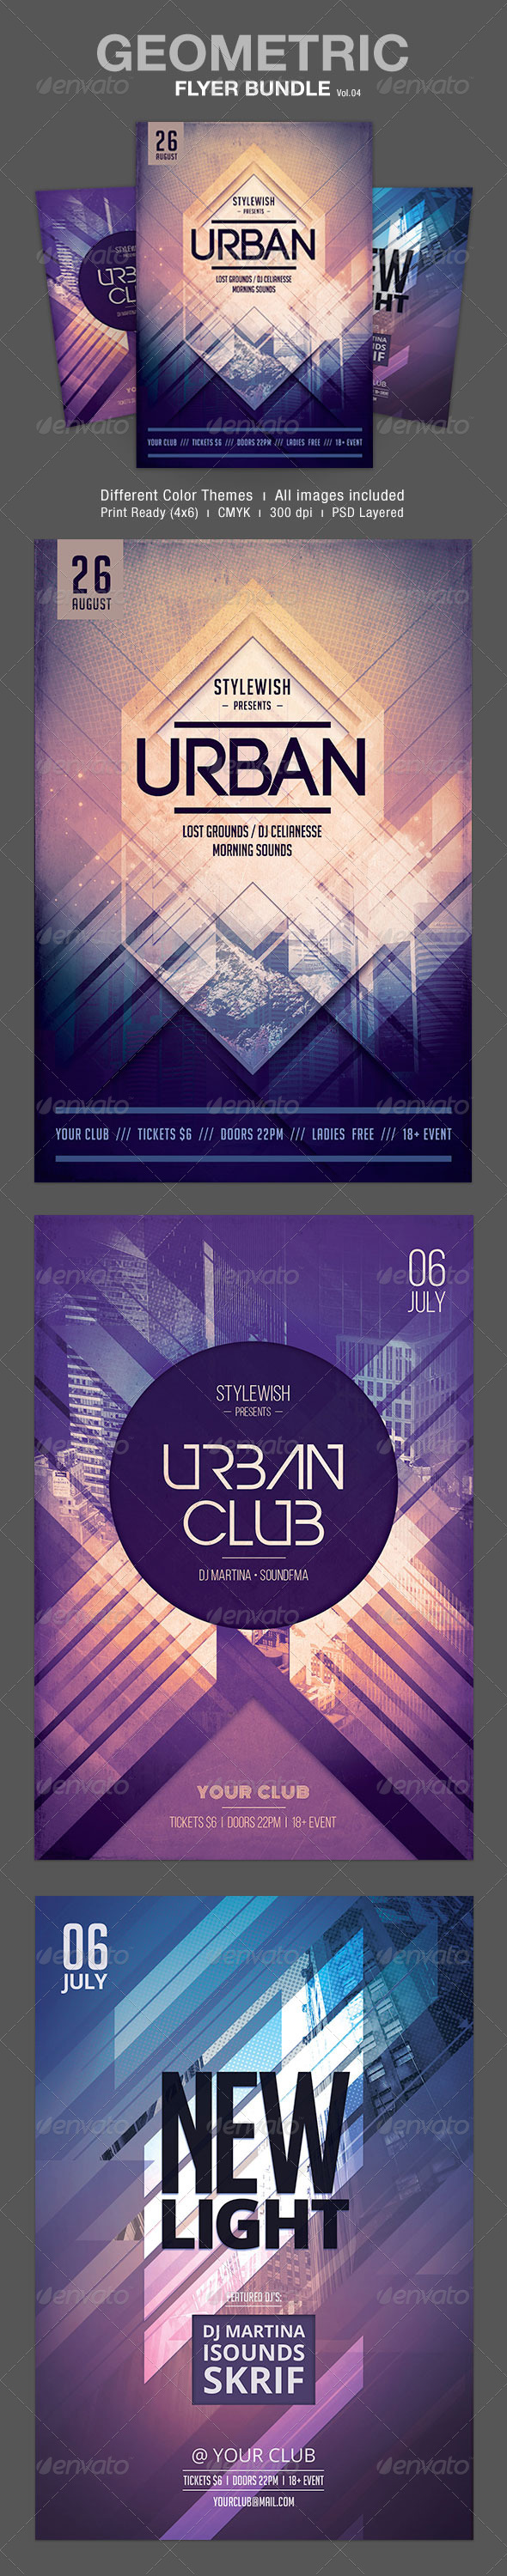 Geometric Flyer Bundle Vol.04 - Clubs & Parties Events